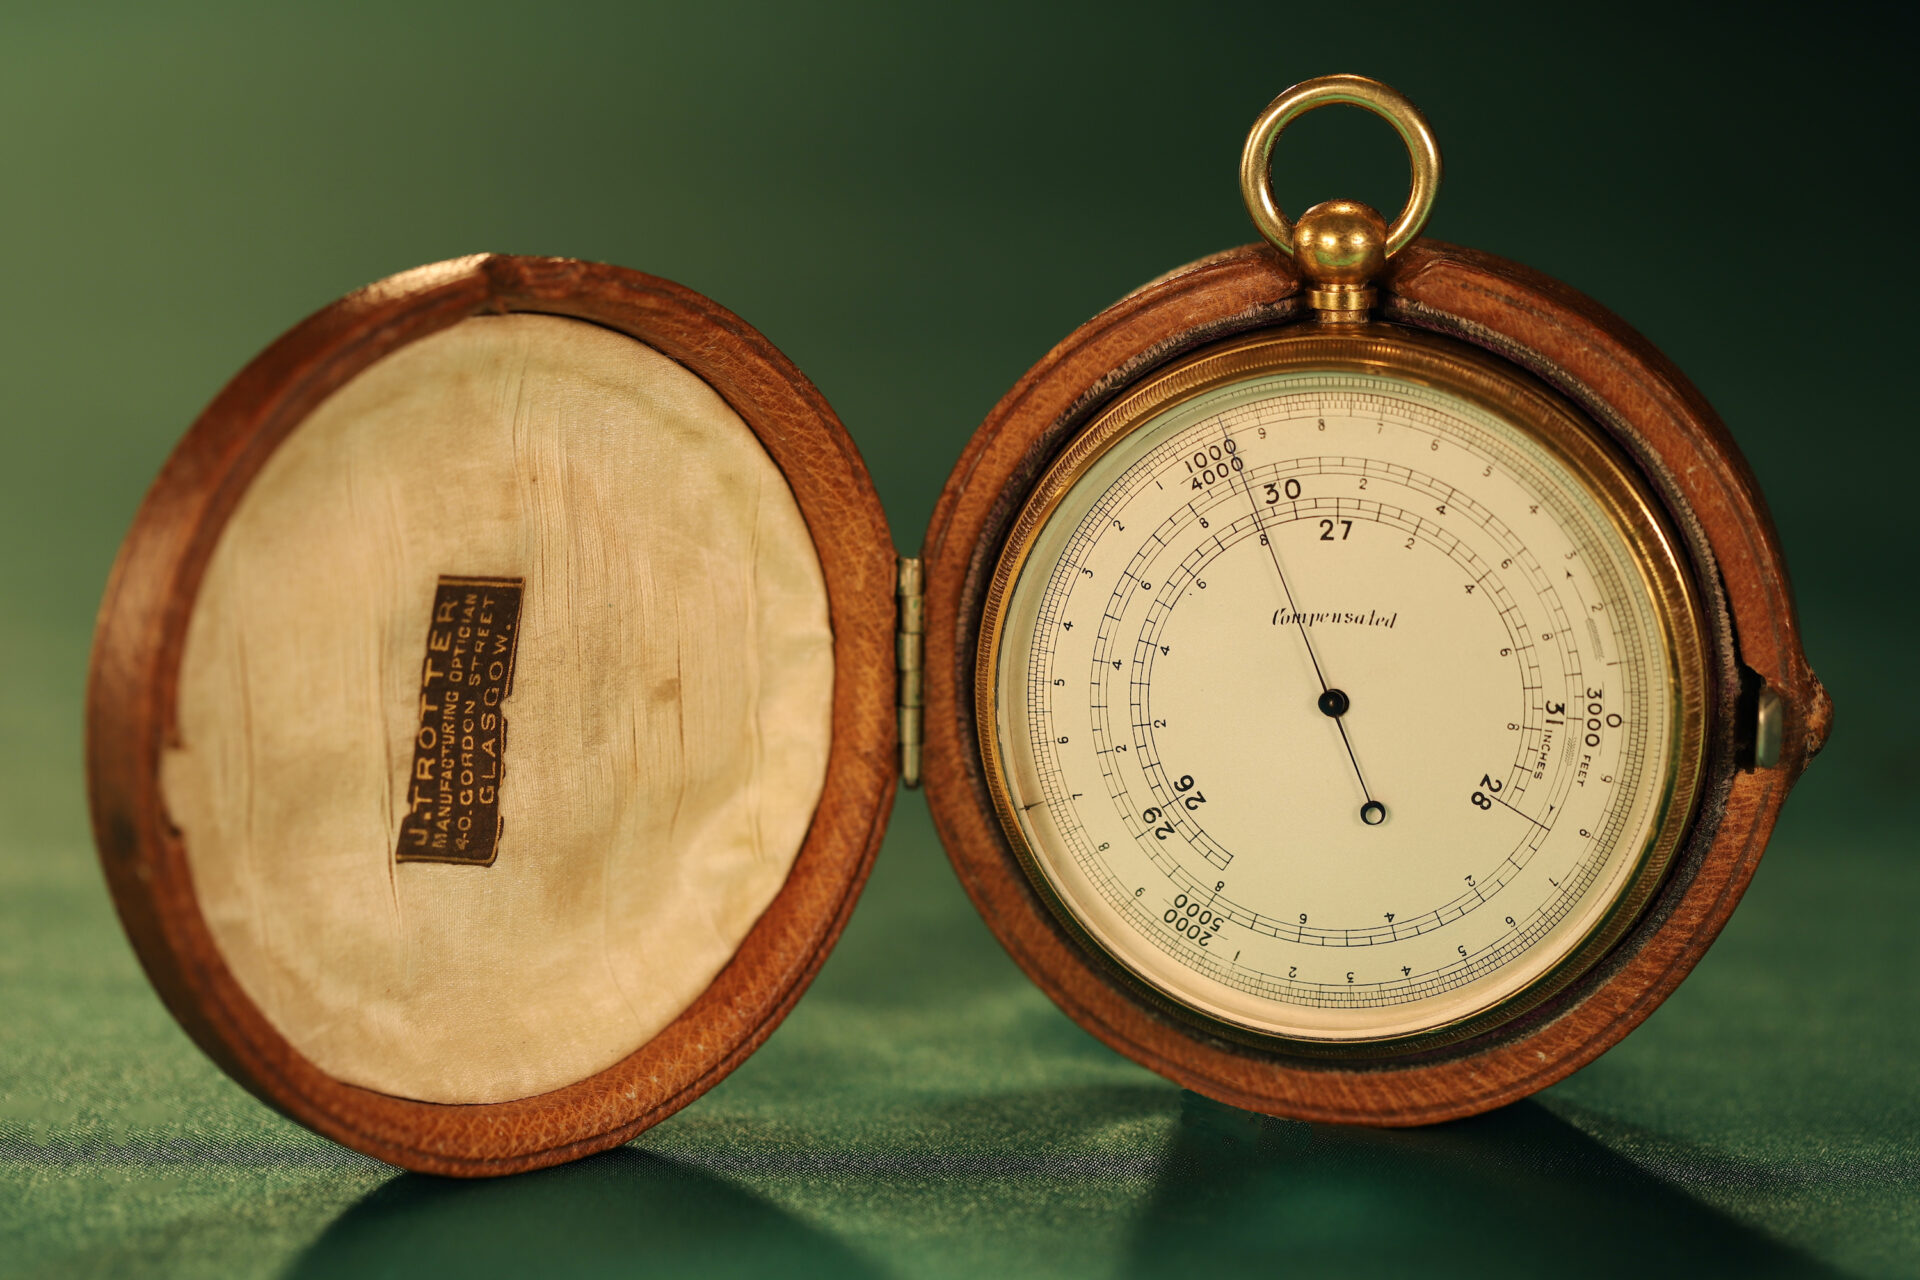 Image of Short & Mason Double Rotation Altimeter c1910 in open travel case